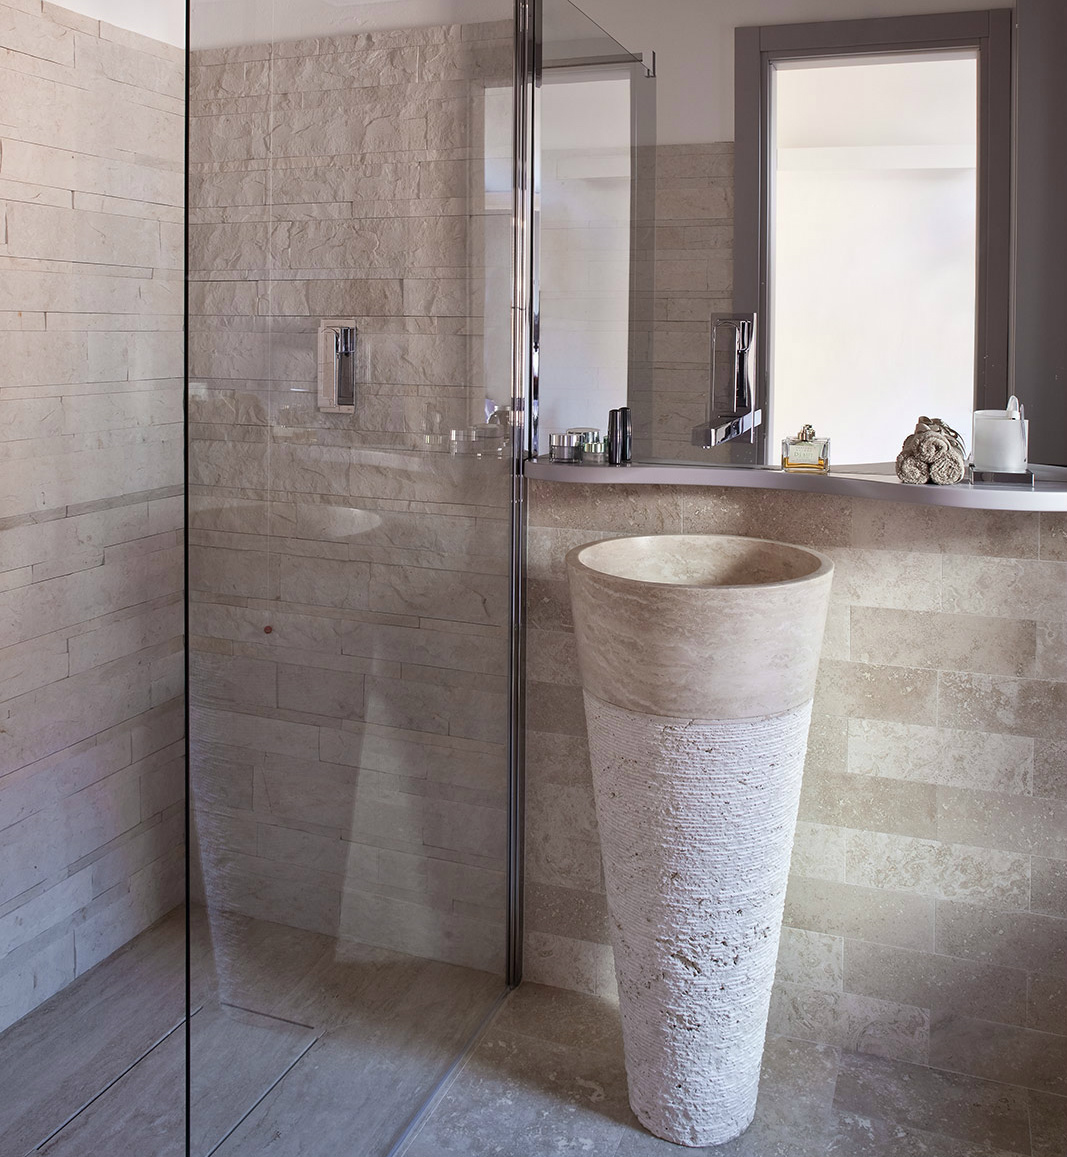 Lavabo Bagno In Pietra ~ duylinh for